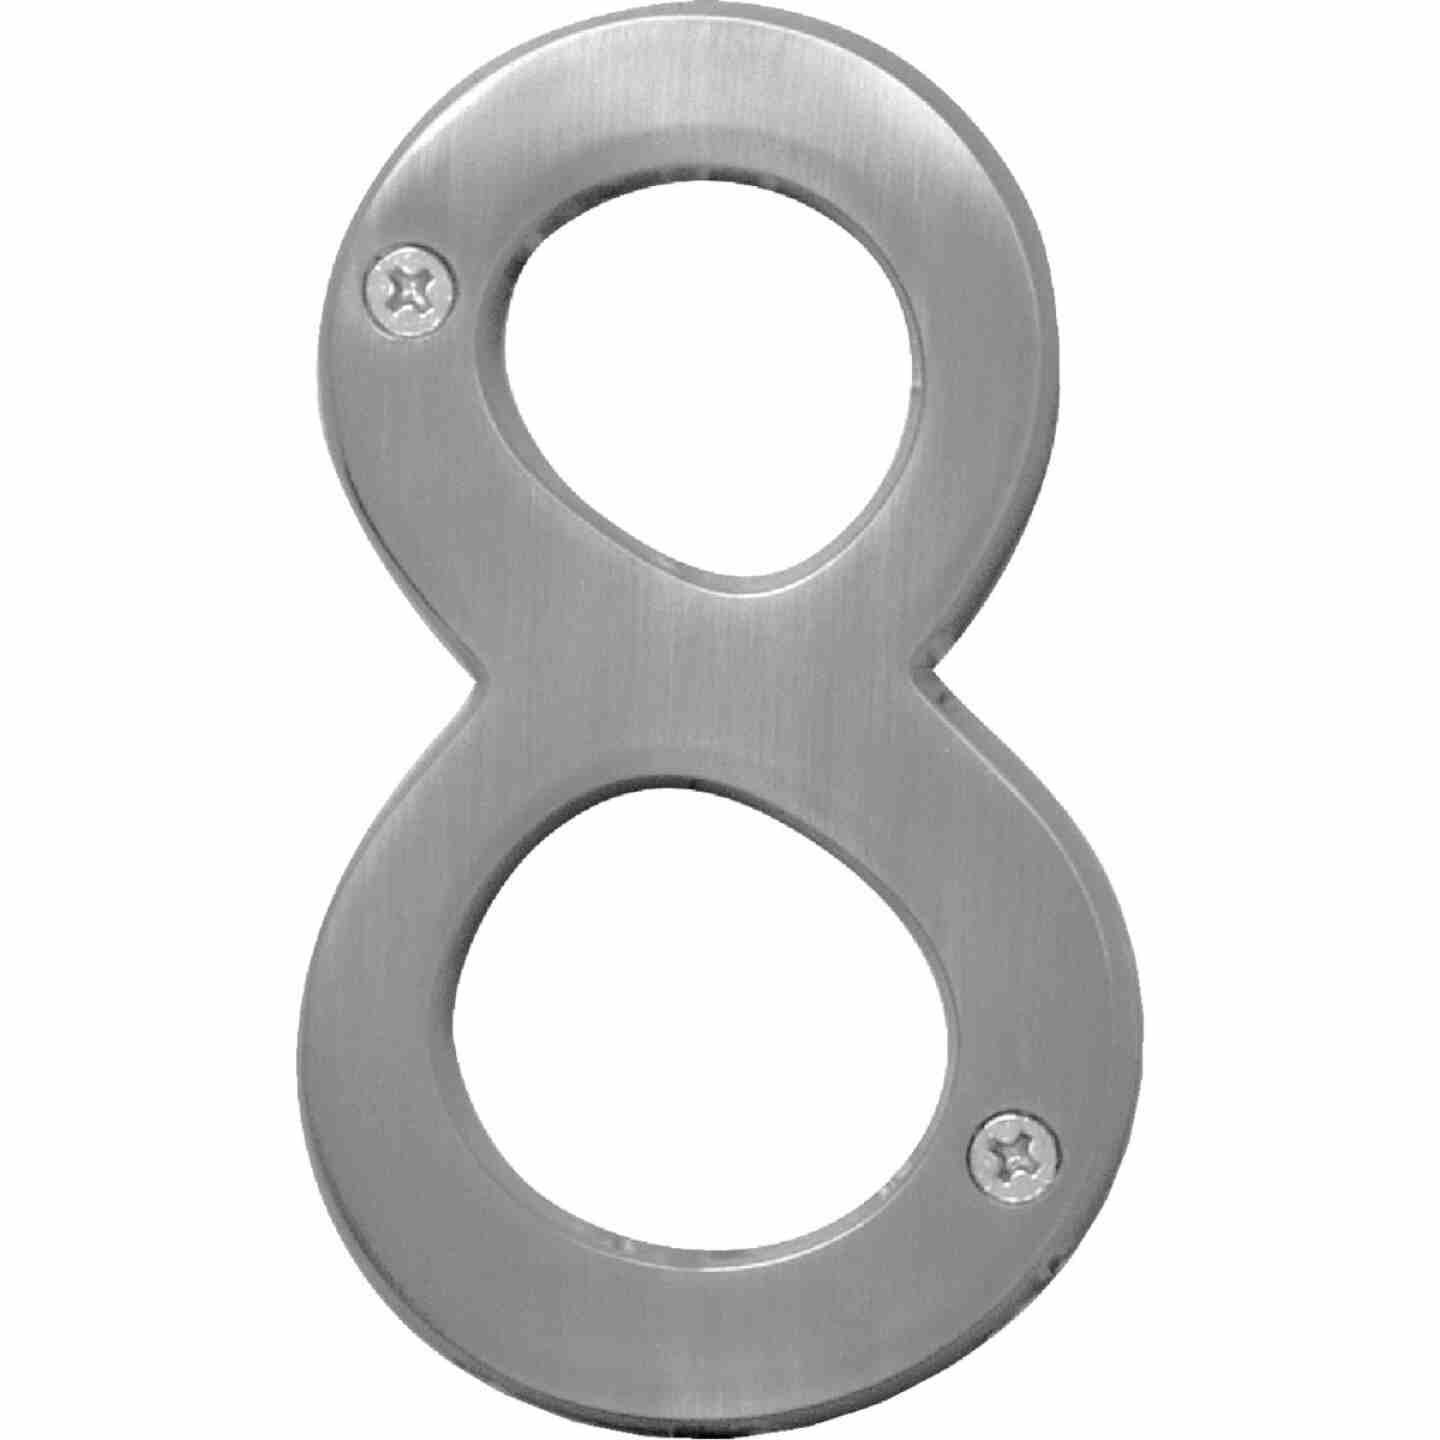 Hy-Ko Prestige Series 4 In. Satin Nickel House Number Eight Image 1